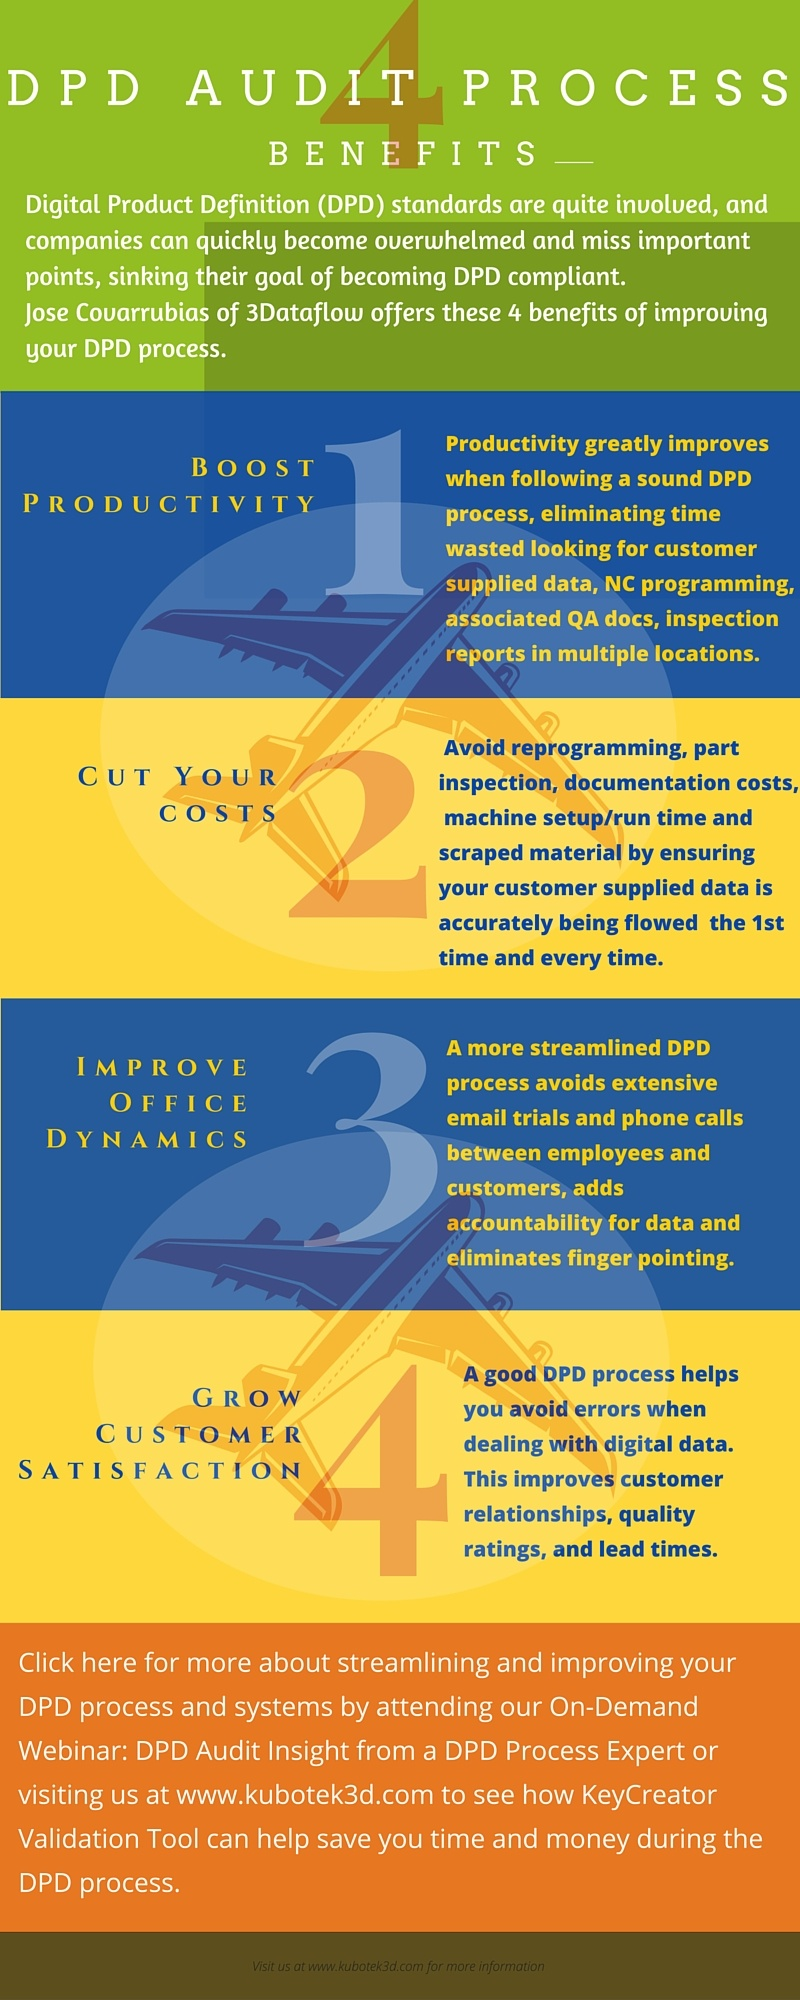 [Infographic] A Quick Look at Improving Your DPD Audit Process